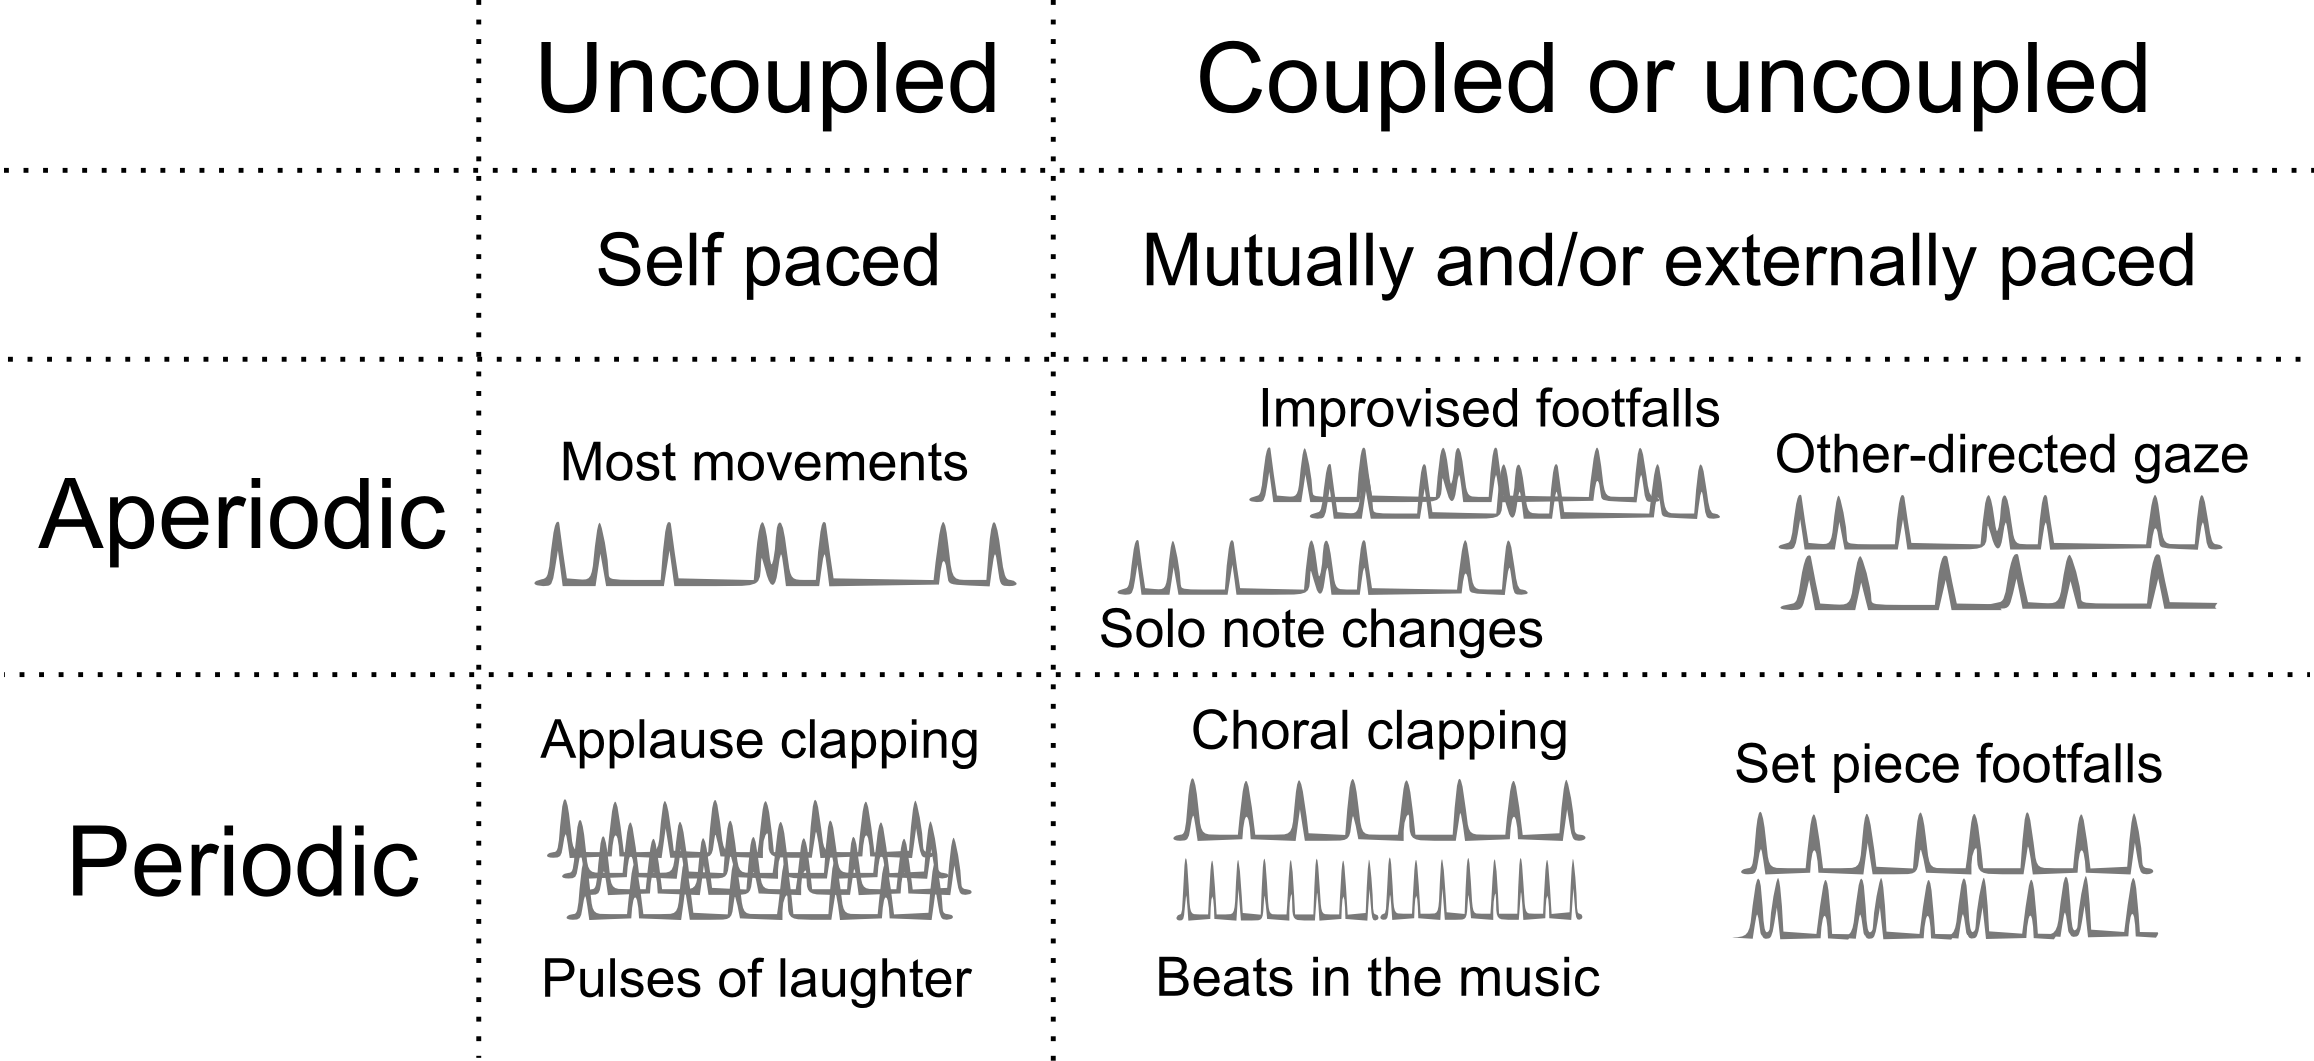 Coupled and uncoupled forms of rhythmical coordination